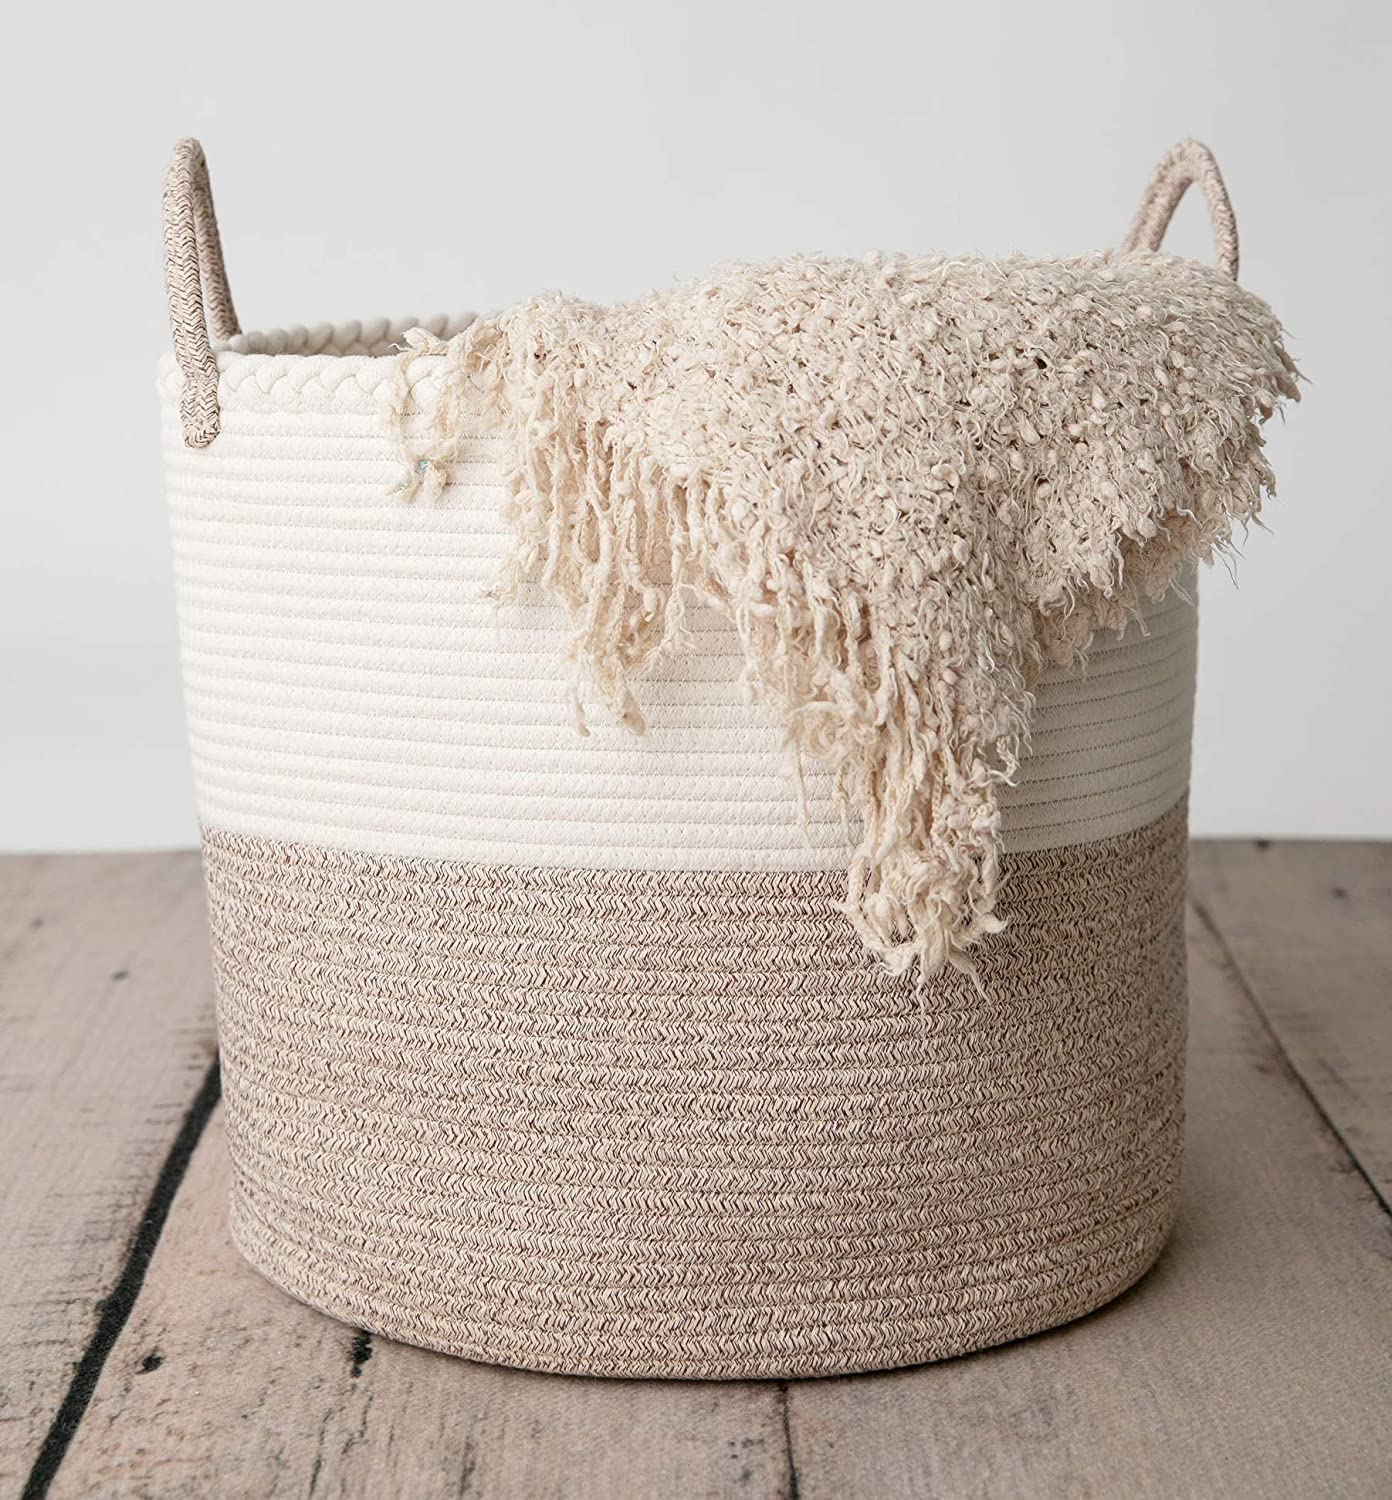 """CHLOÉ + KAI Woven Storage Basket (17.5"""" x 16"""") for Nursery, Laundry, Living Room. Pillows, Toys, Plant Pot, Blanket Basket – Coiled Large Cotton Rope Basket with Handle"""